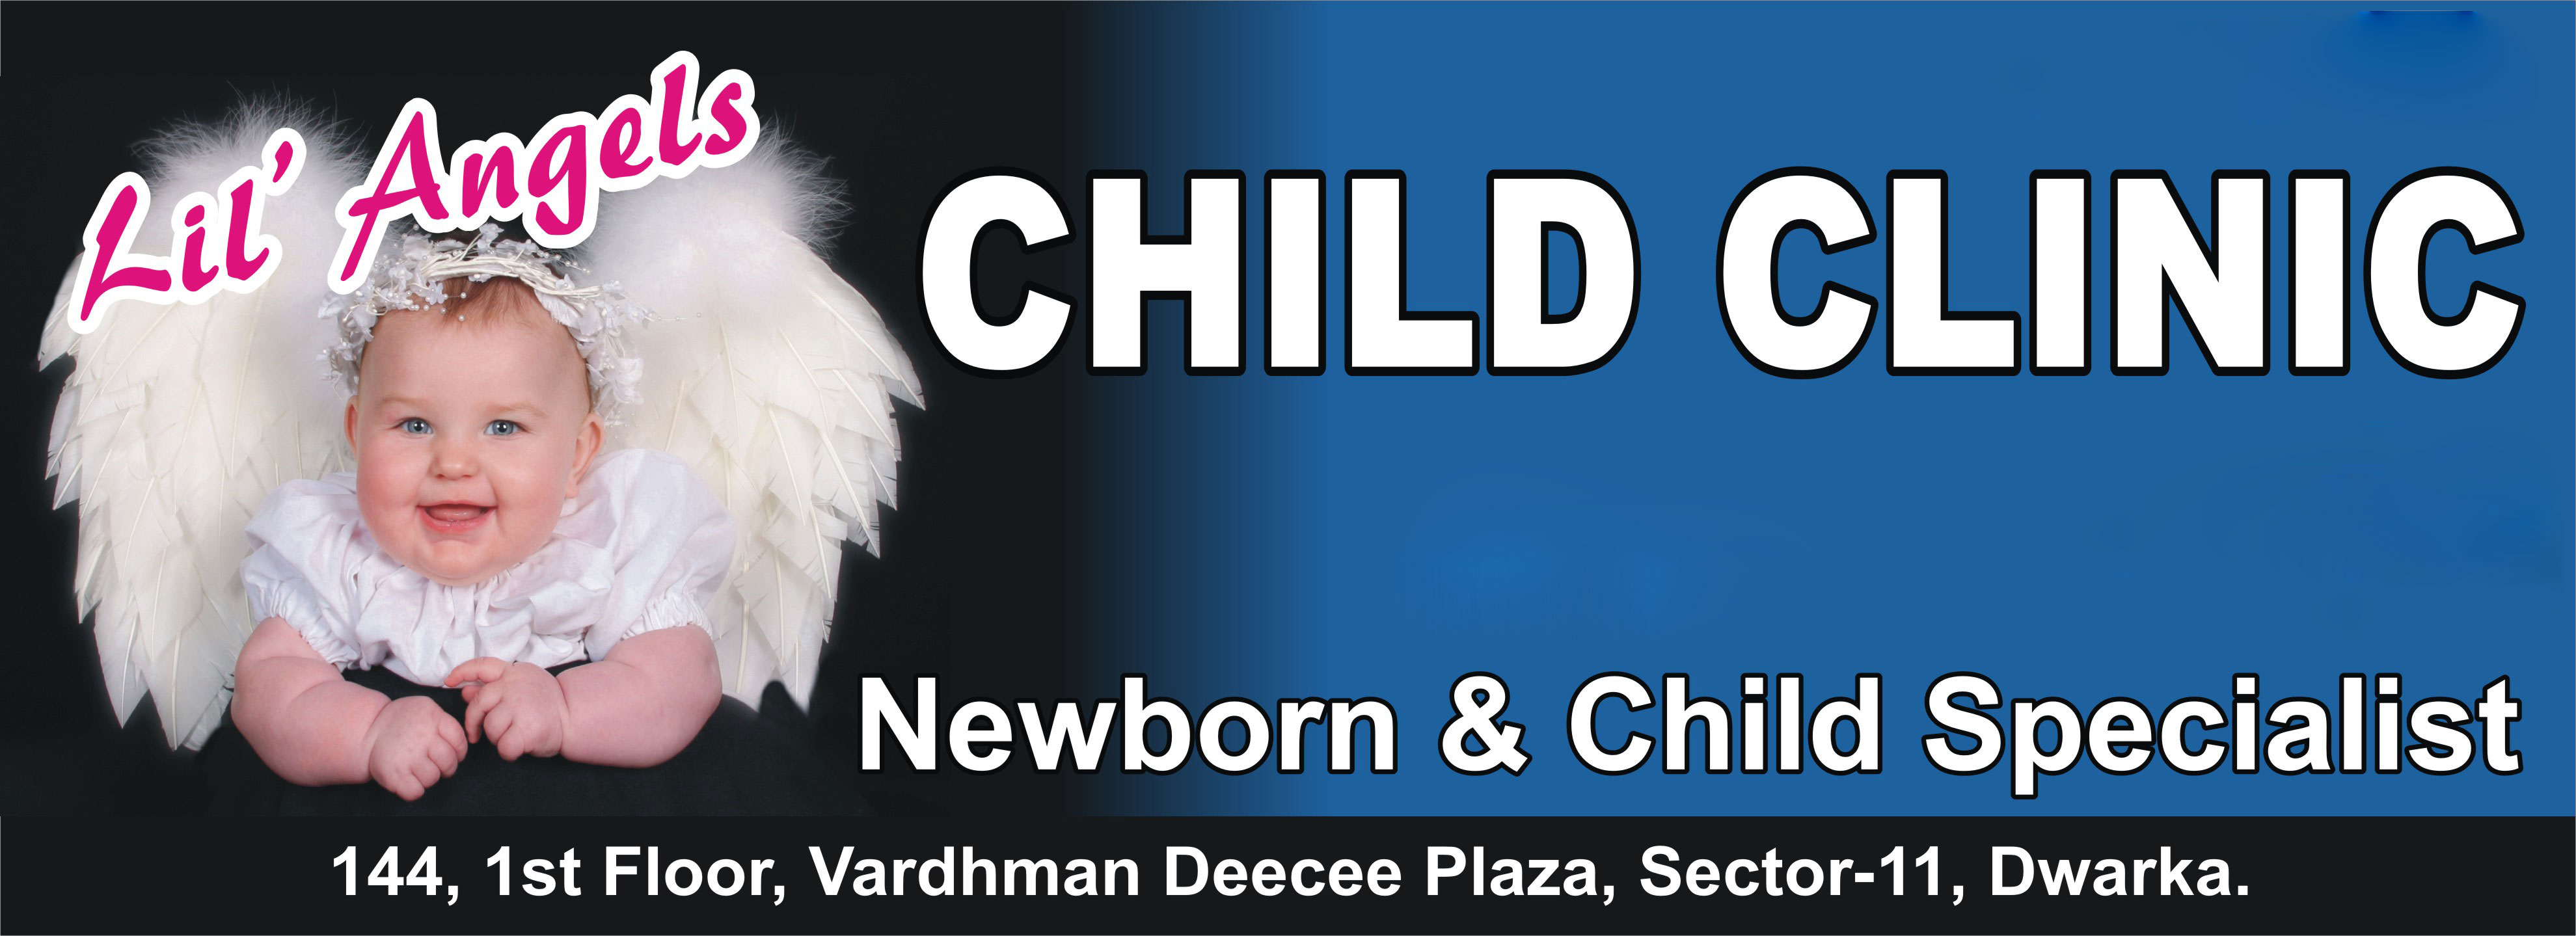 Lil' Angels Child Clinic